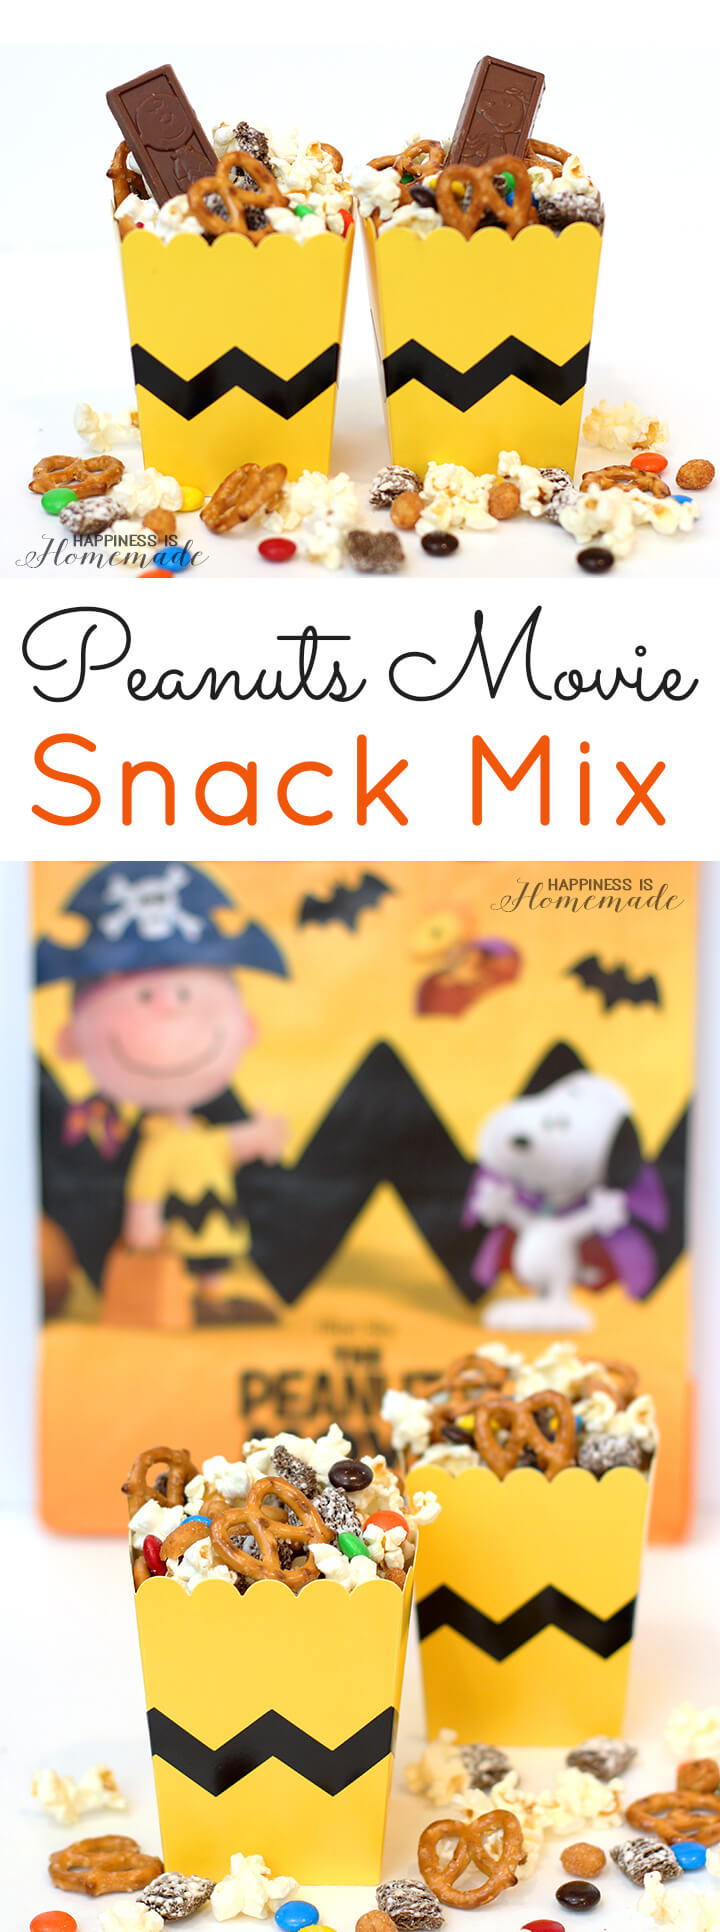 New Peanuts Movie Snack Mix